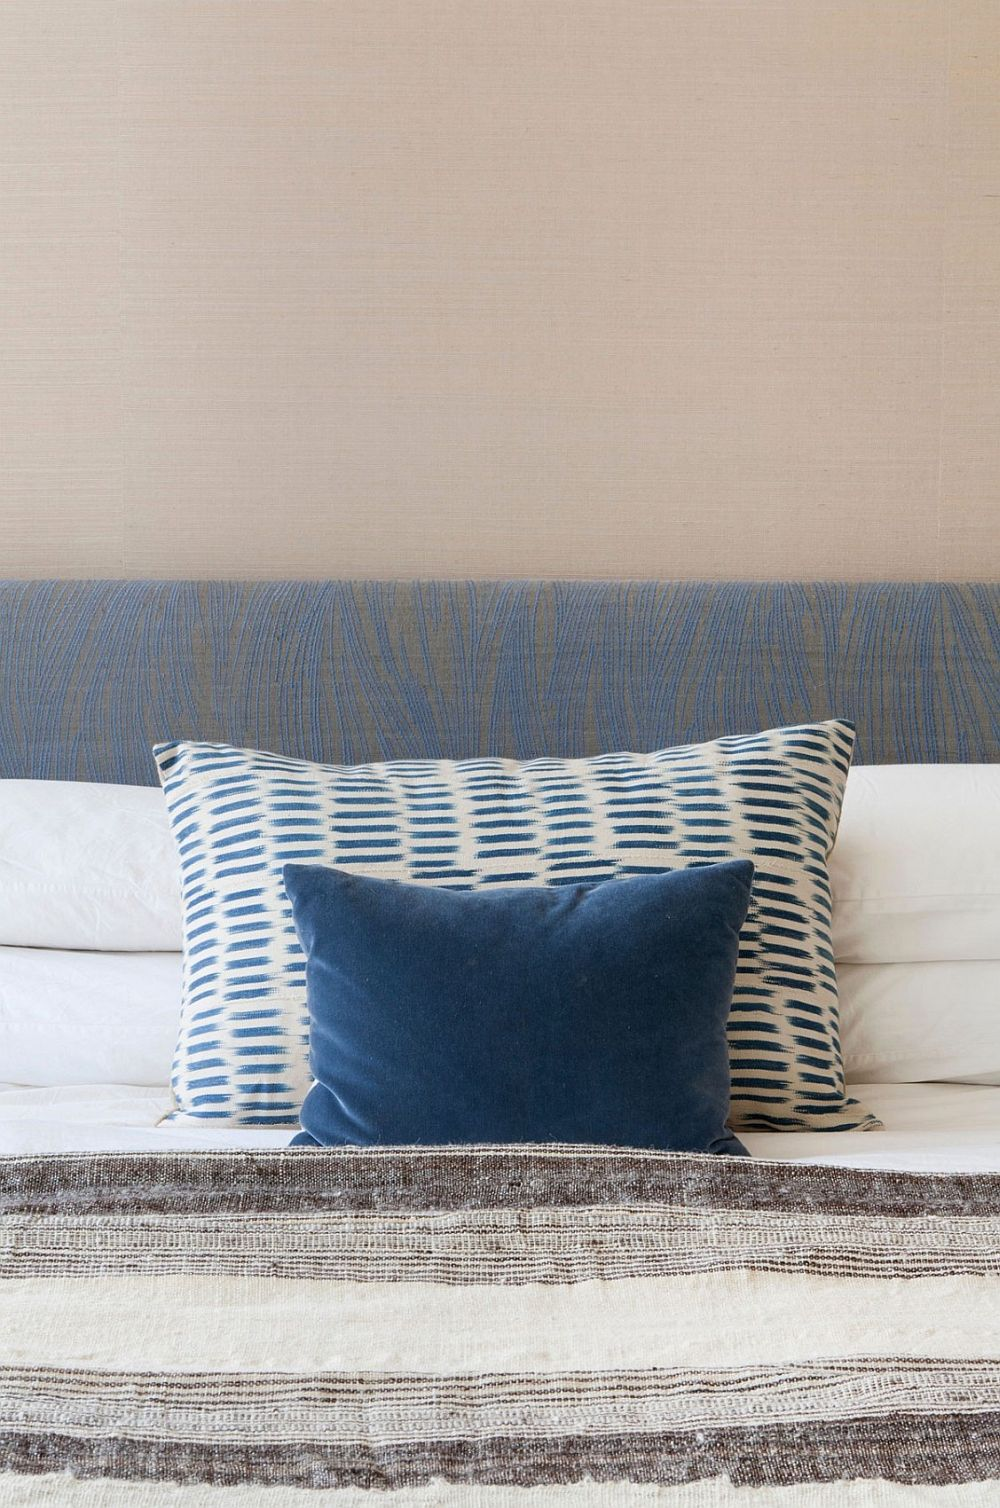 Bedroom with grasscloth walls and blue accents